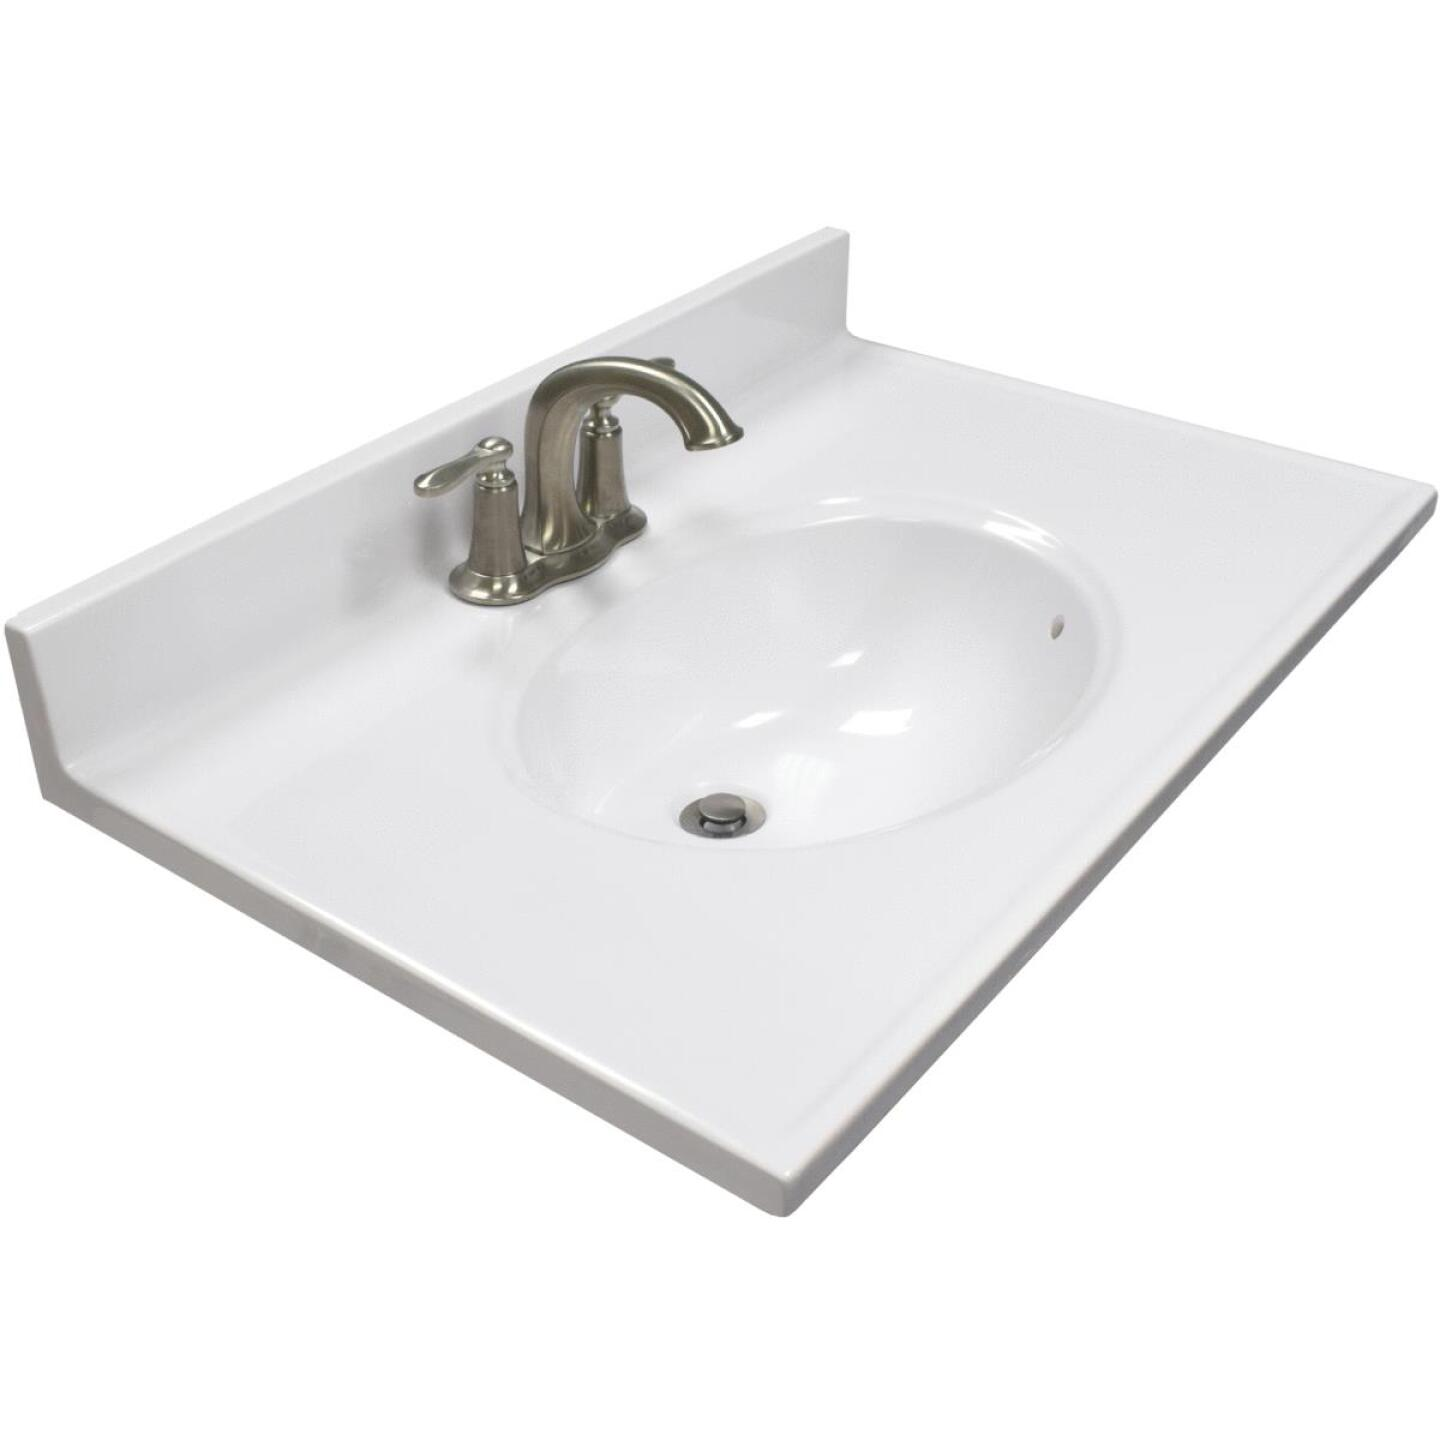 Modular Vanity Tops 31 In. W x 19 In. D Solid White Cultured Marble Vanity Top with Oval Bowl Image 1